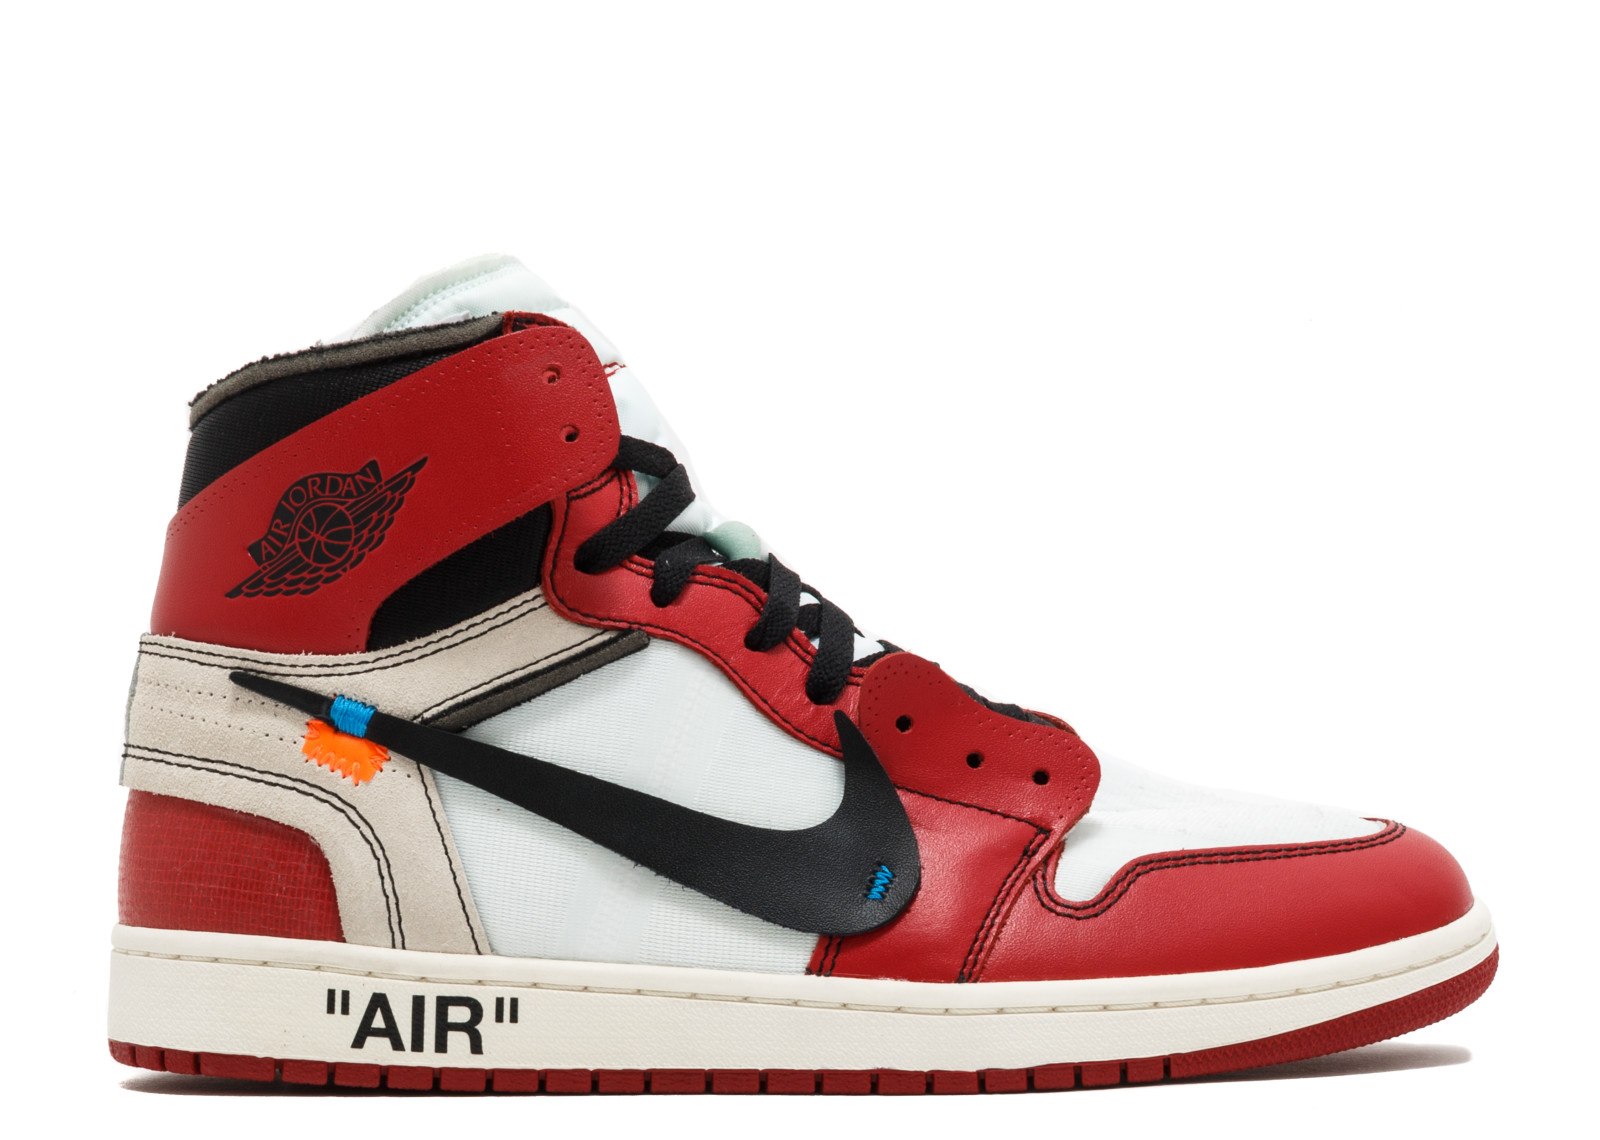 men s nike jordan trainers primerica scam bbb shoes are ugly sticks